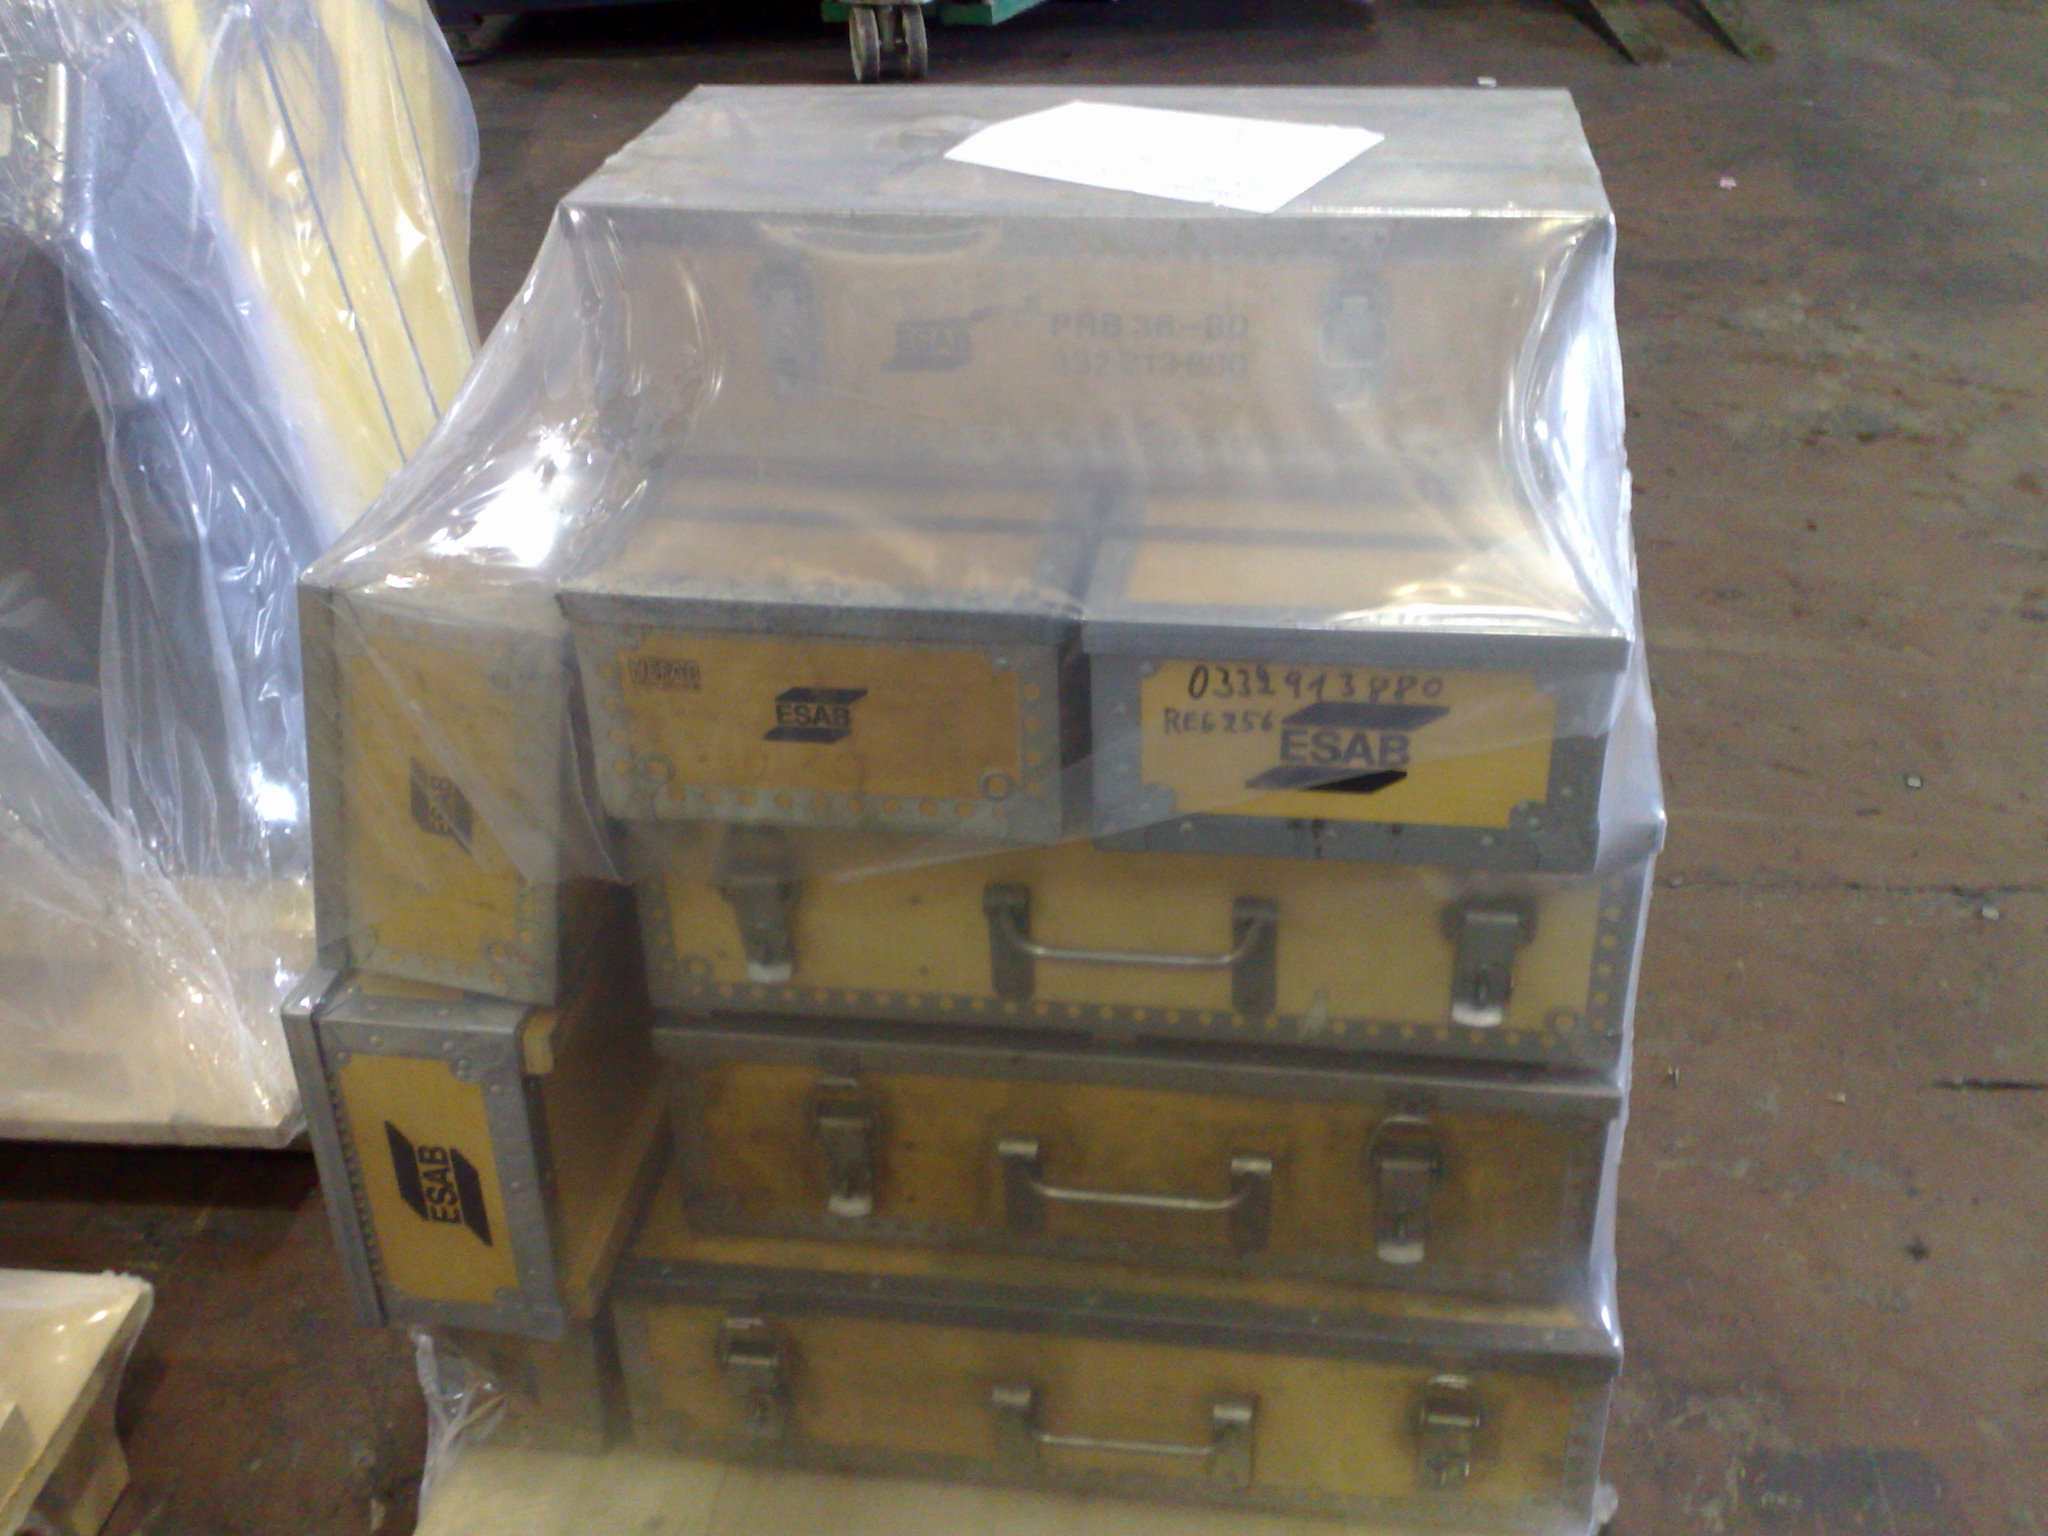 ESAB orbital welding equipment for sale